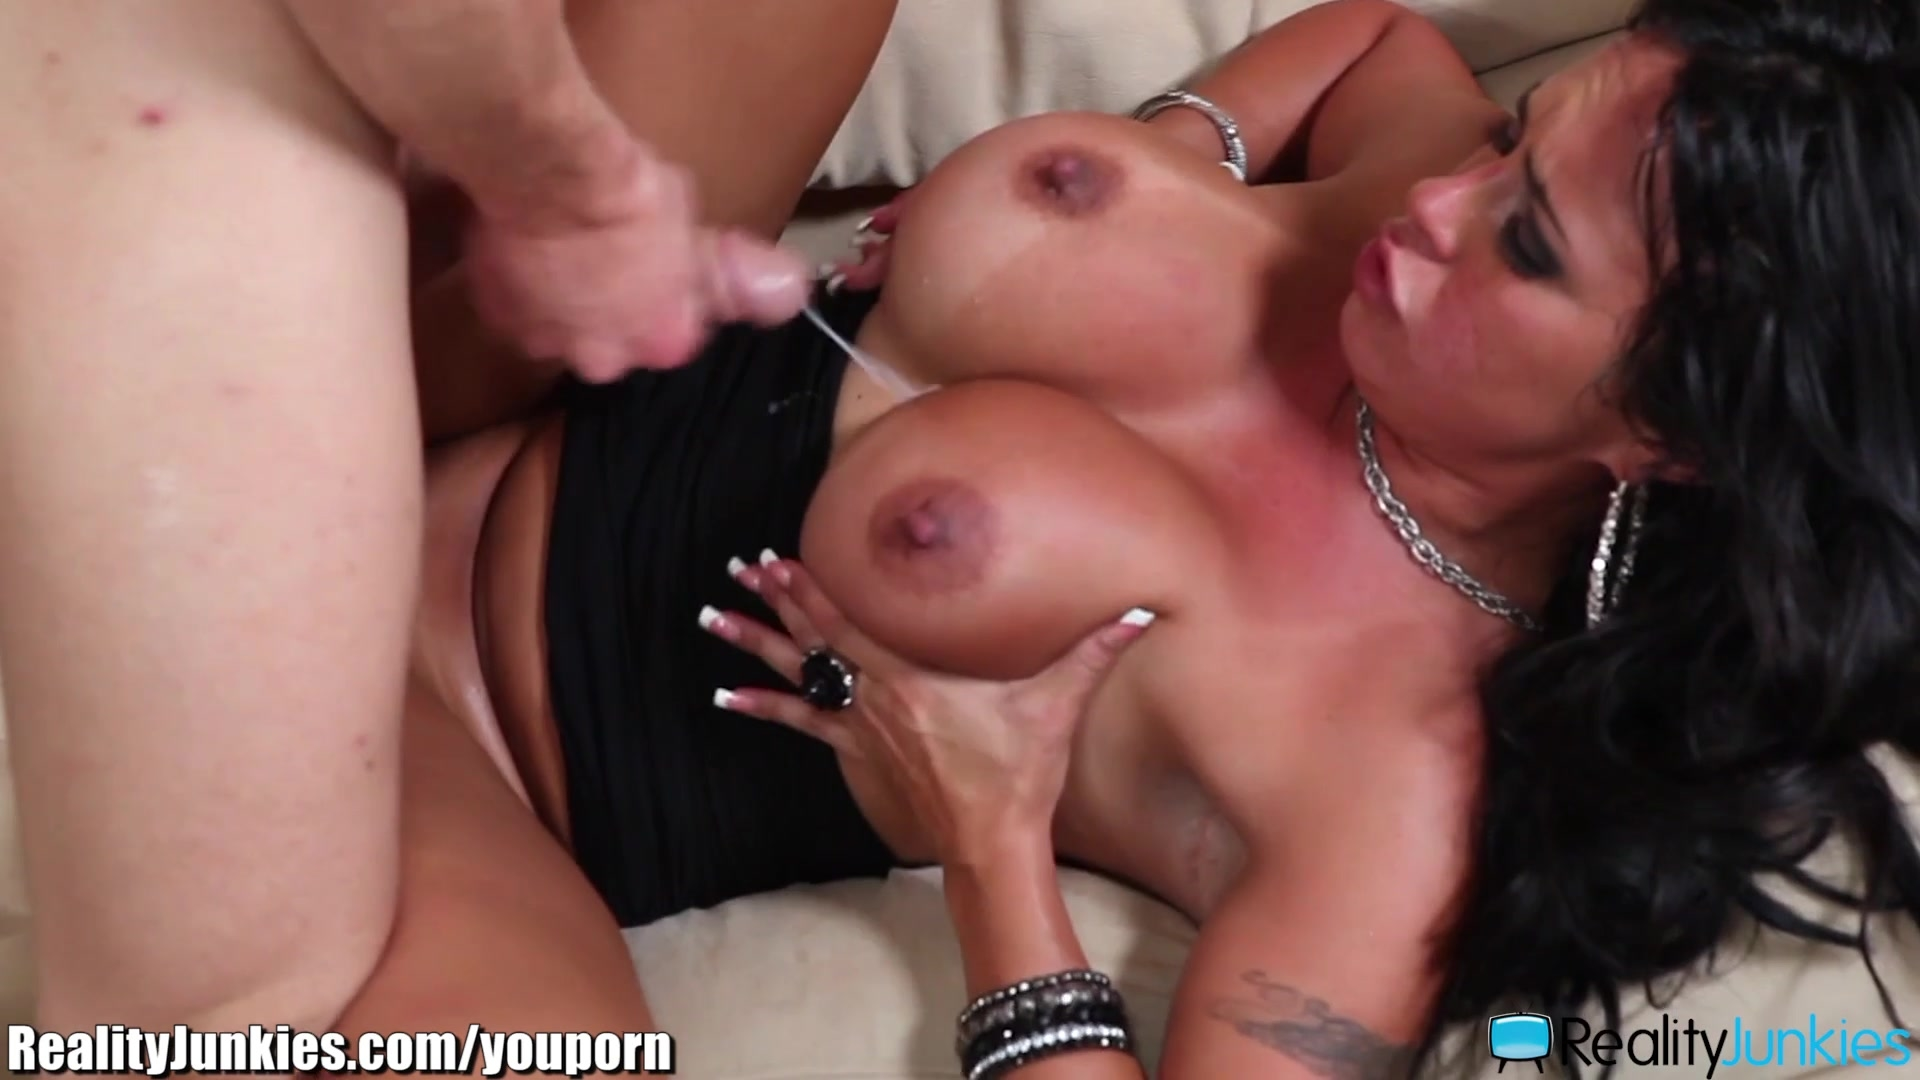 Eurocreme twink double penetration rated